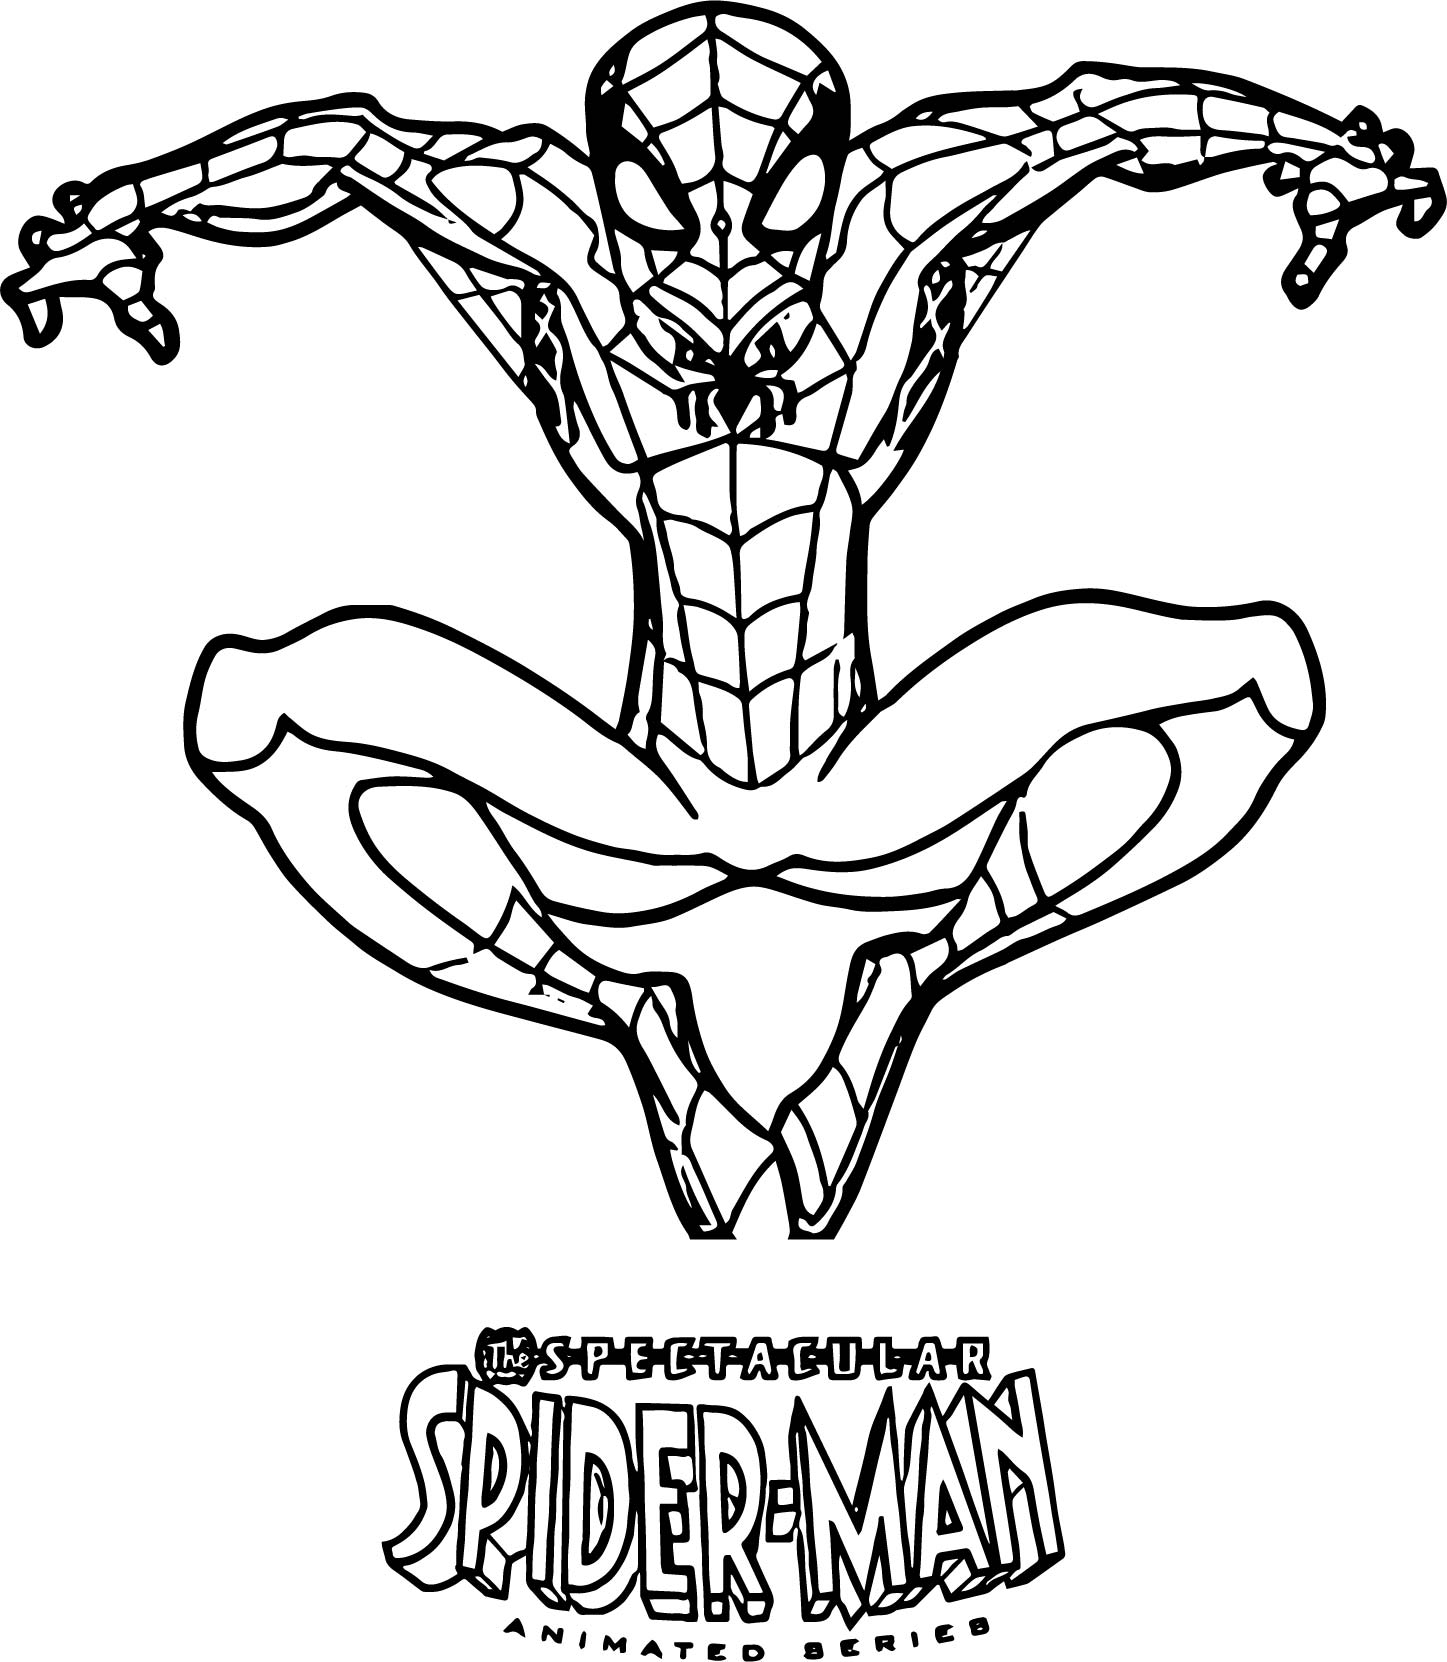 Spiderman Black Suit Coloring Pages At Getcolorings